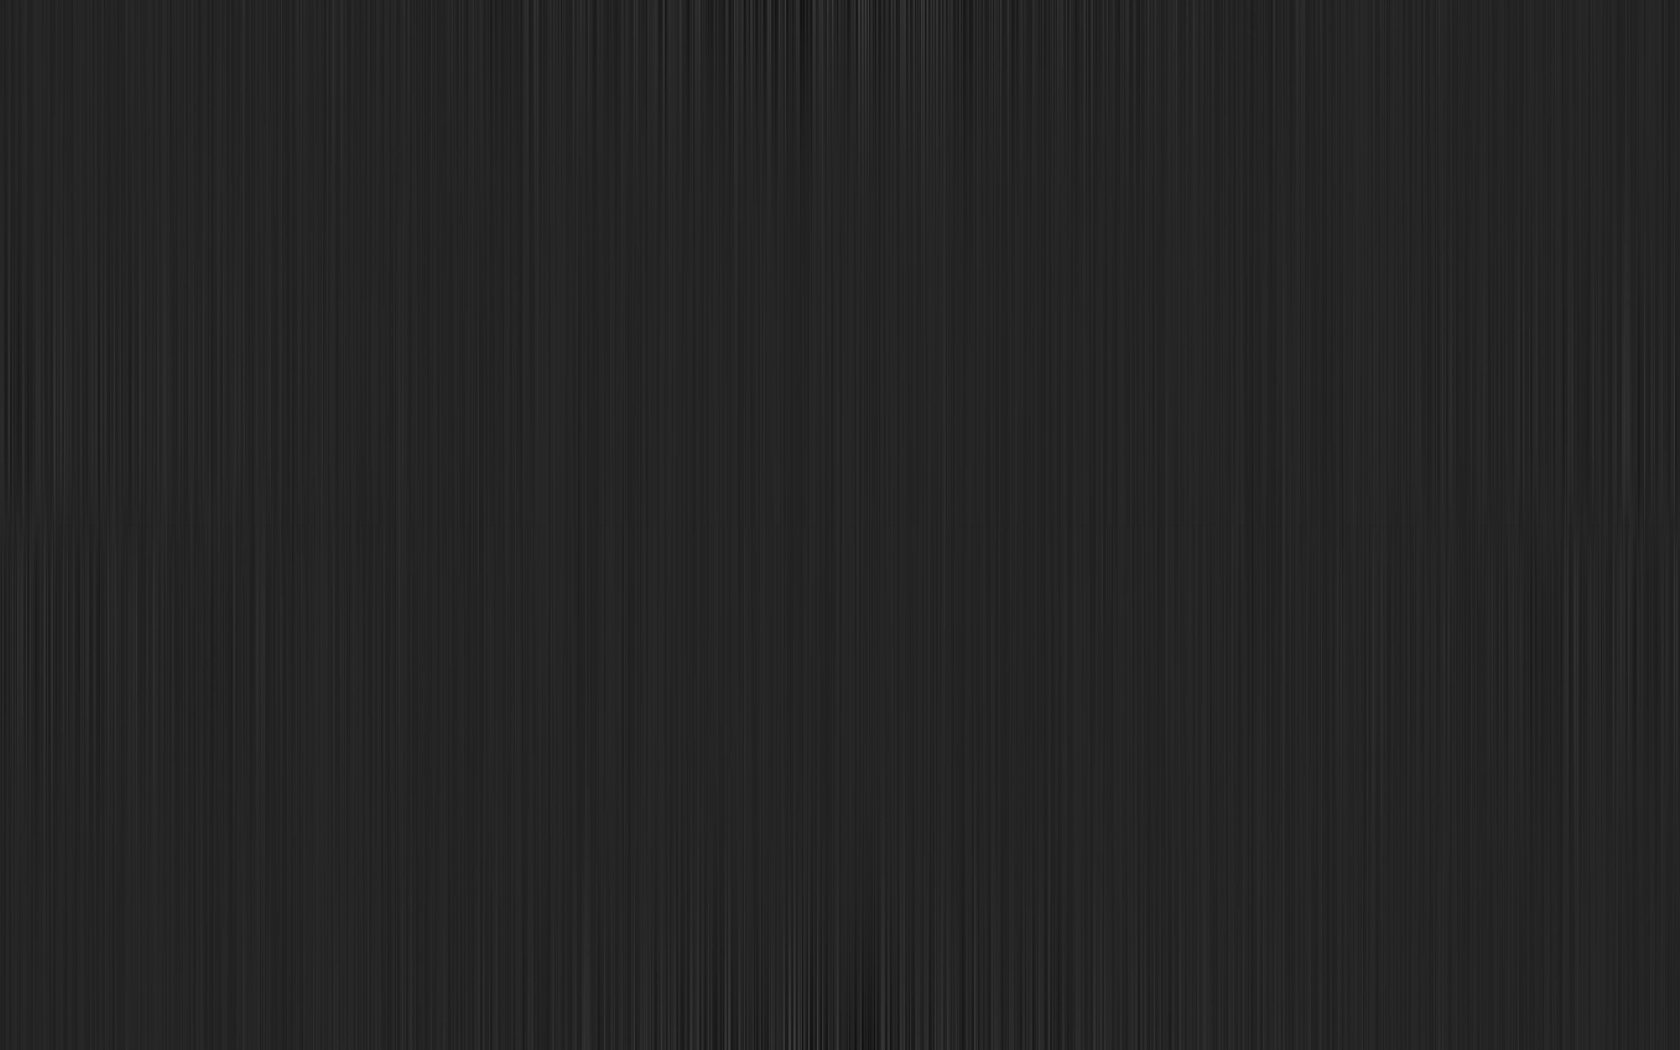 brushed_stripes_dark by 10r